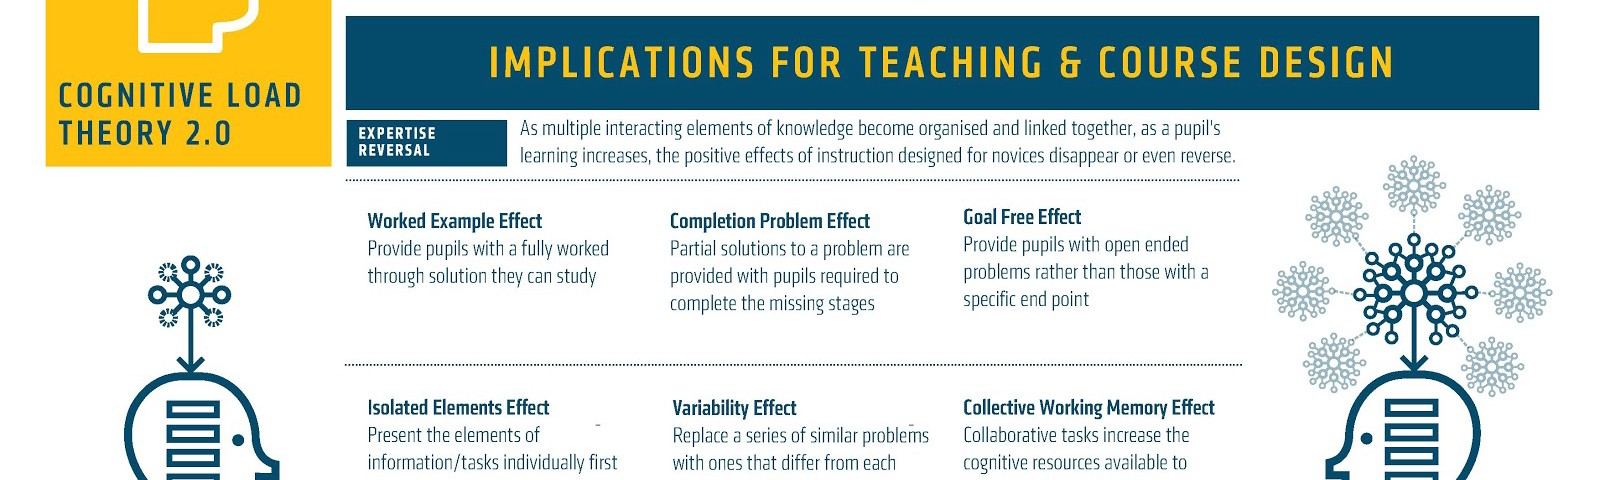 Cognitive Load Theory Updated; 20 Years On—Implications for Teachers and Teaching